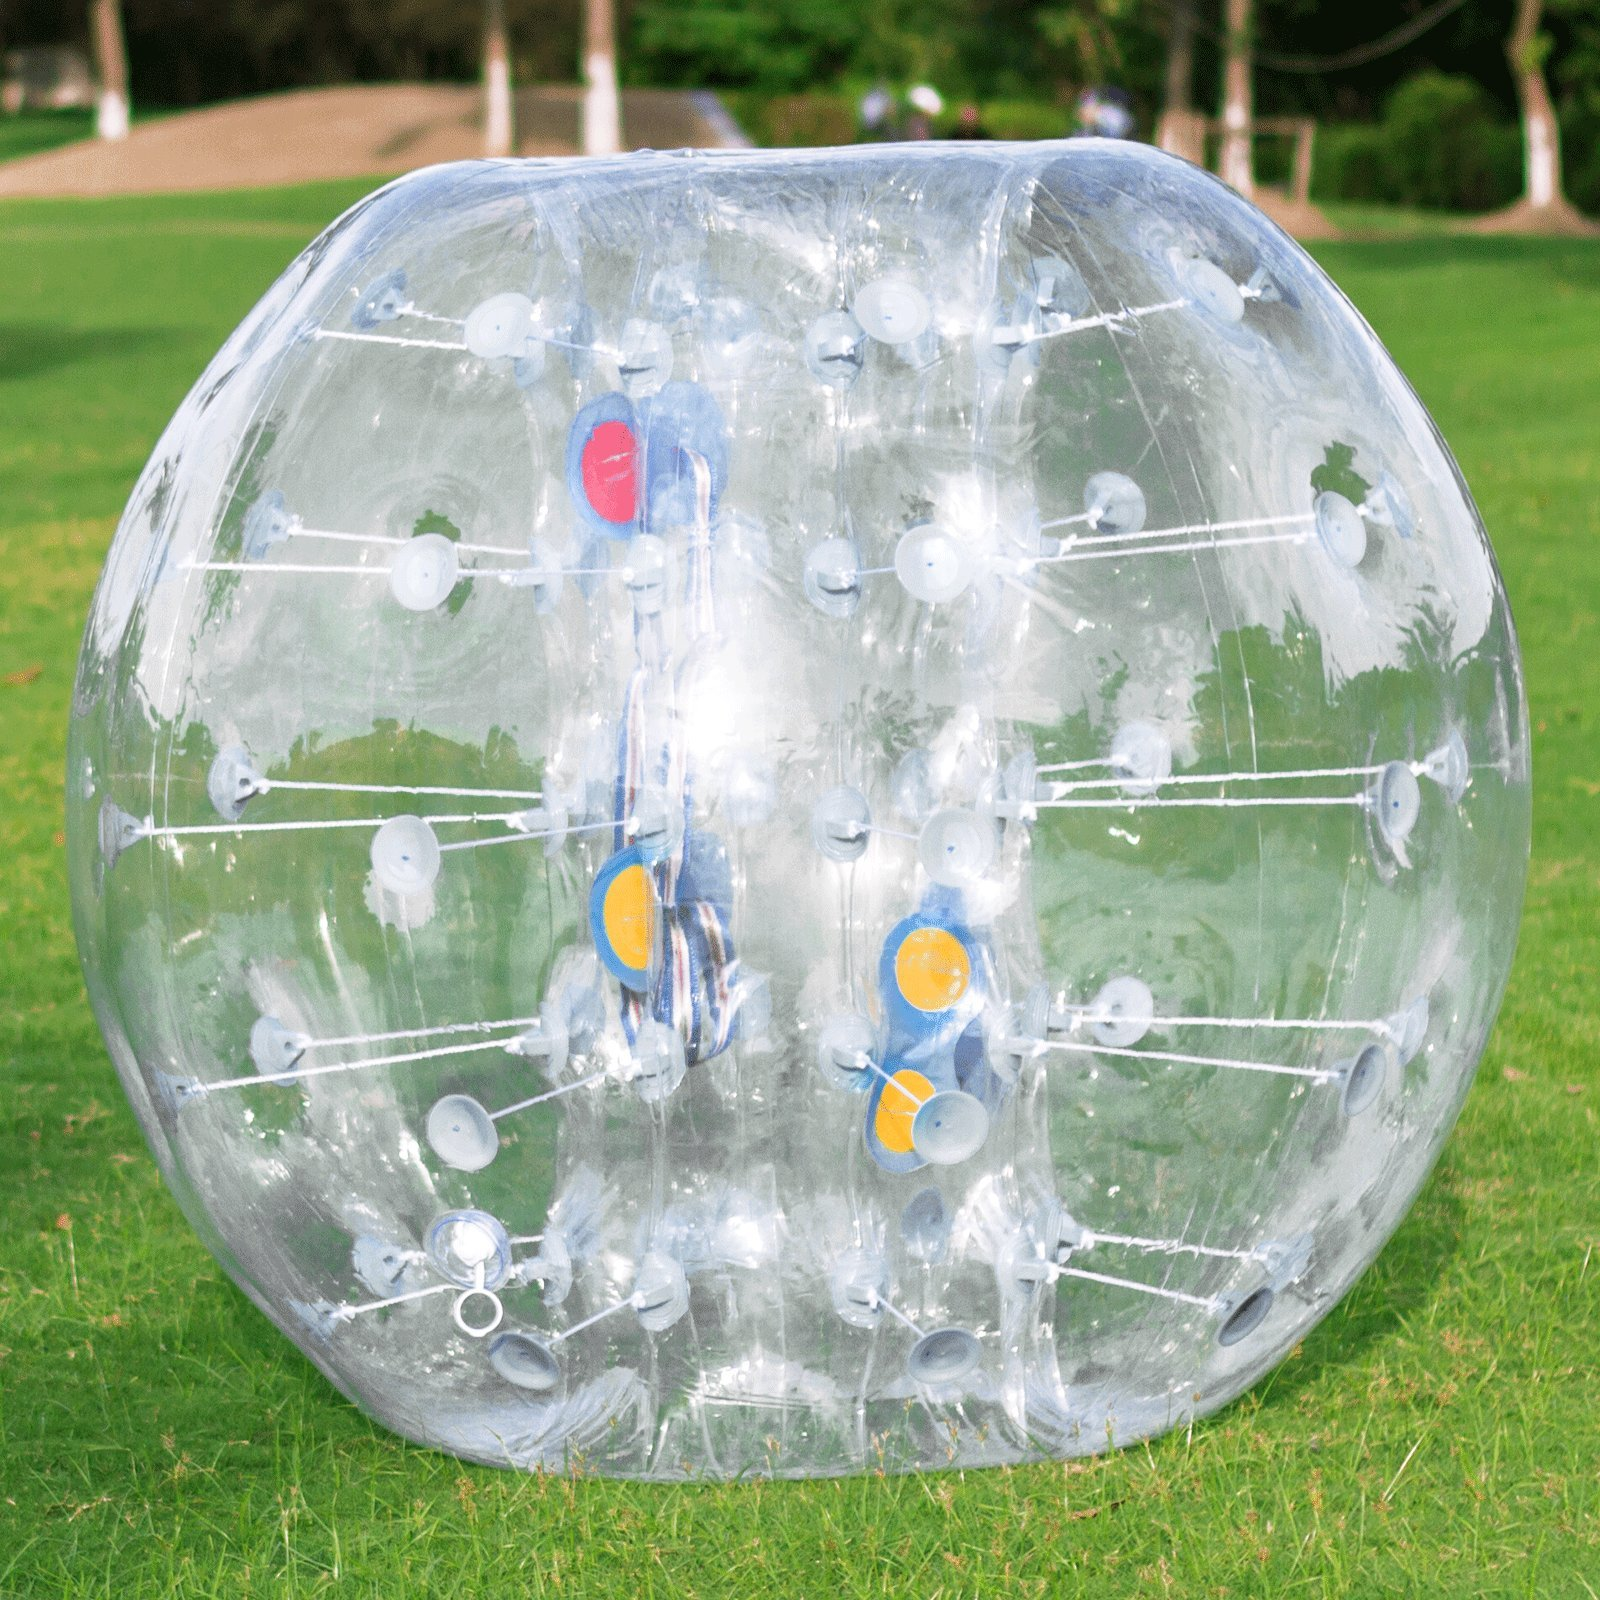 Popsport Inflatable Bumper Ball 4FT/5FT Bubble